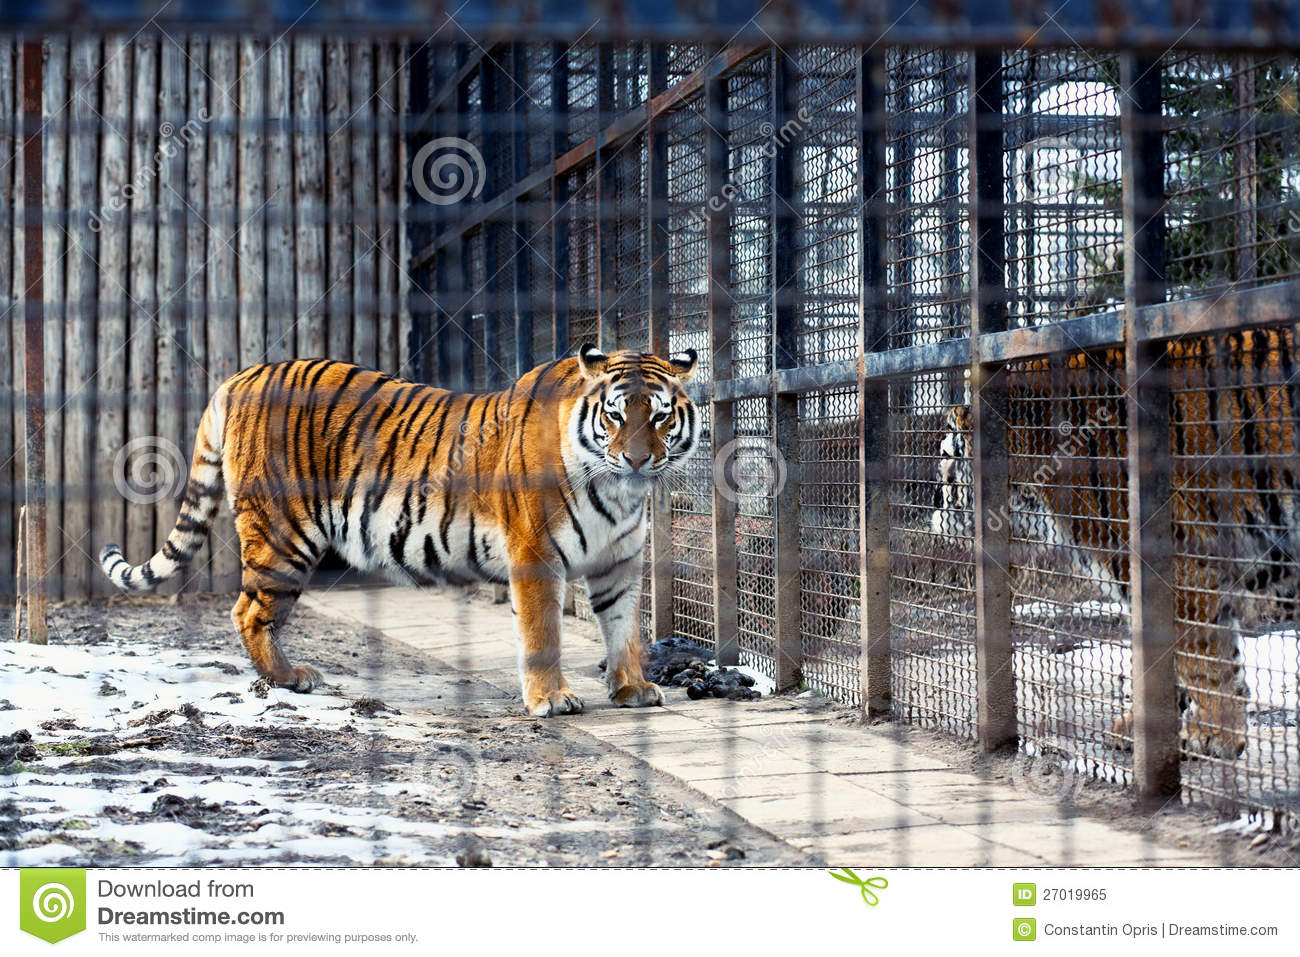 Bengal tiger in cage stock image image of siberia fence 27019965 - Tiger in cage images ...